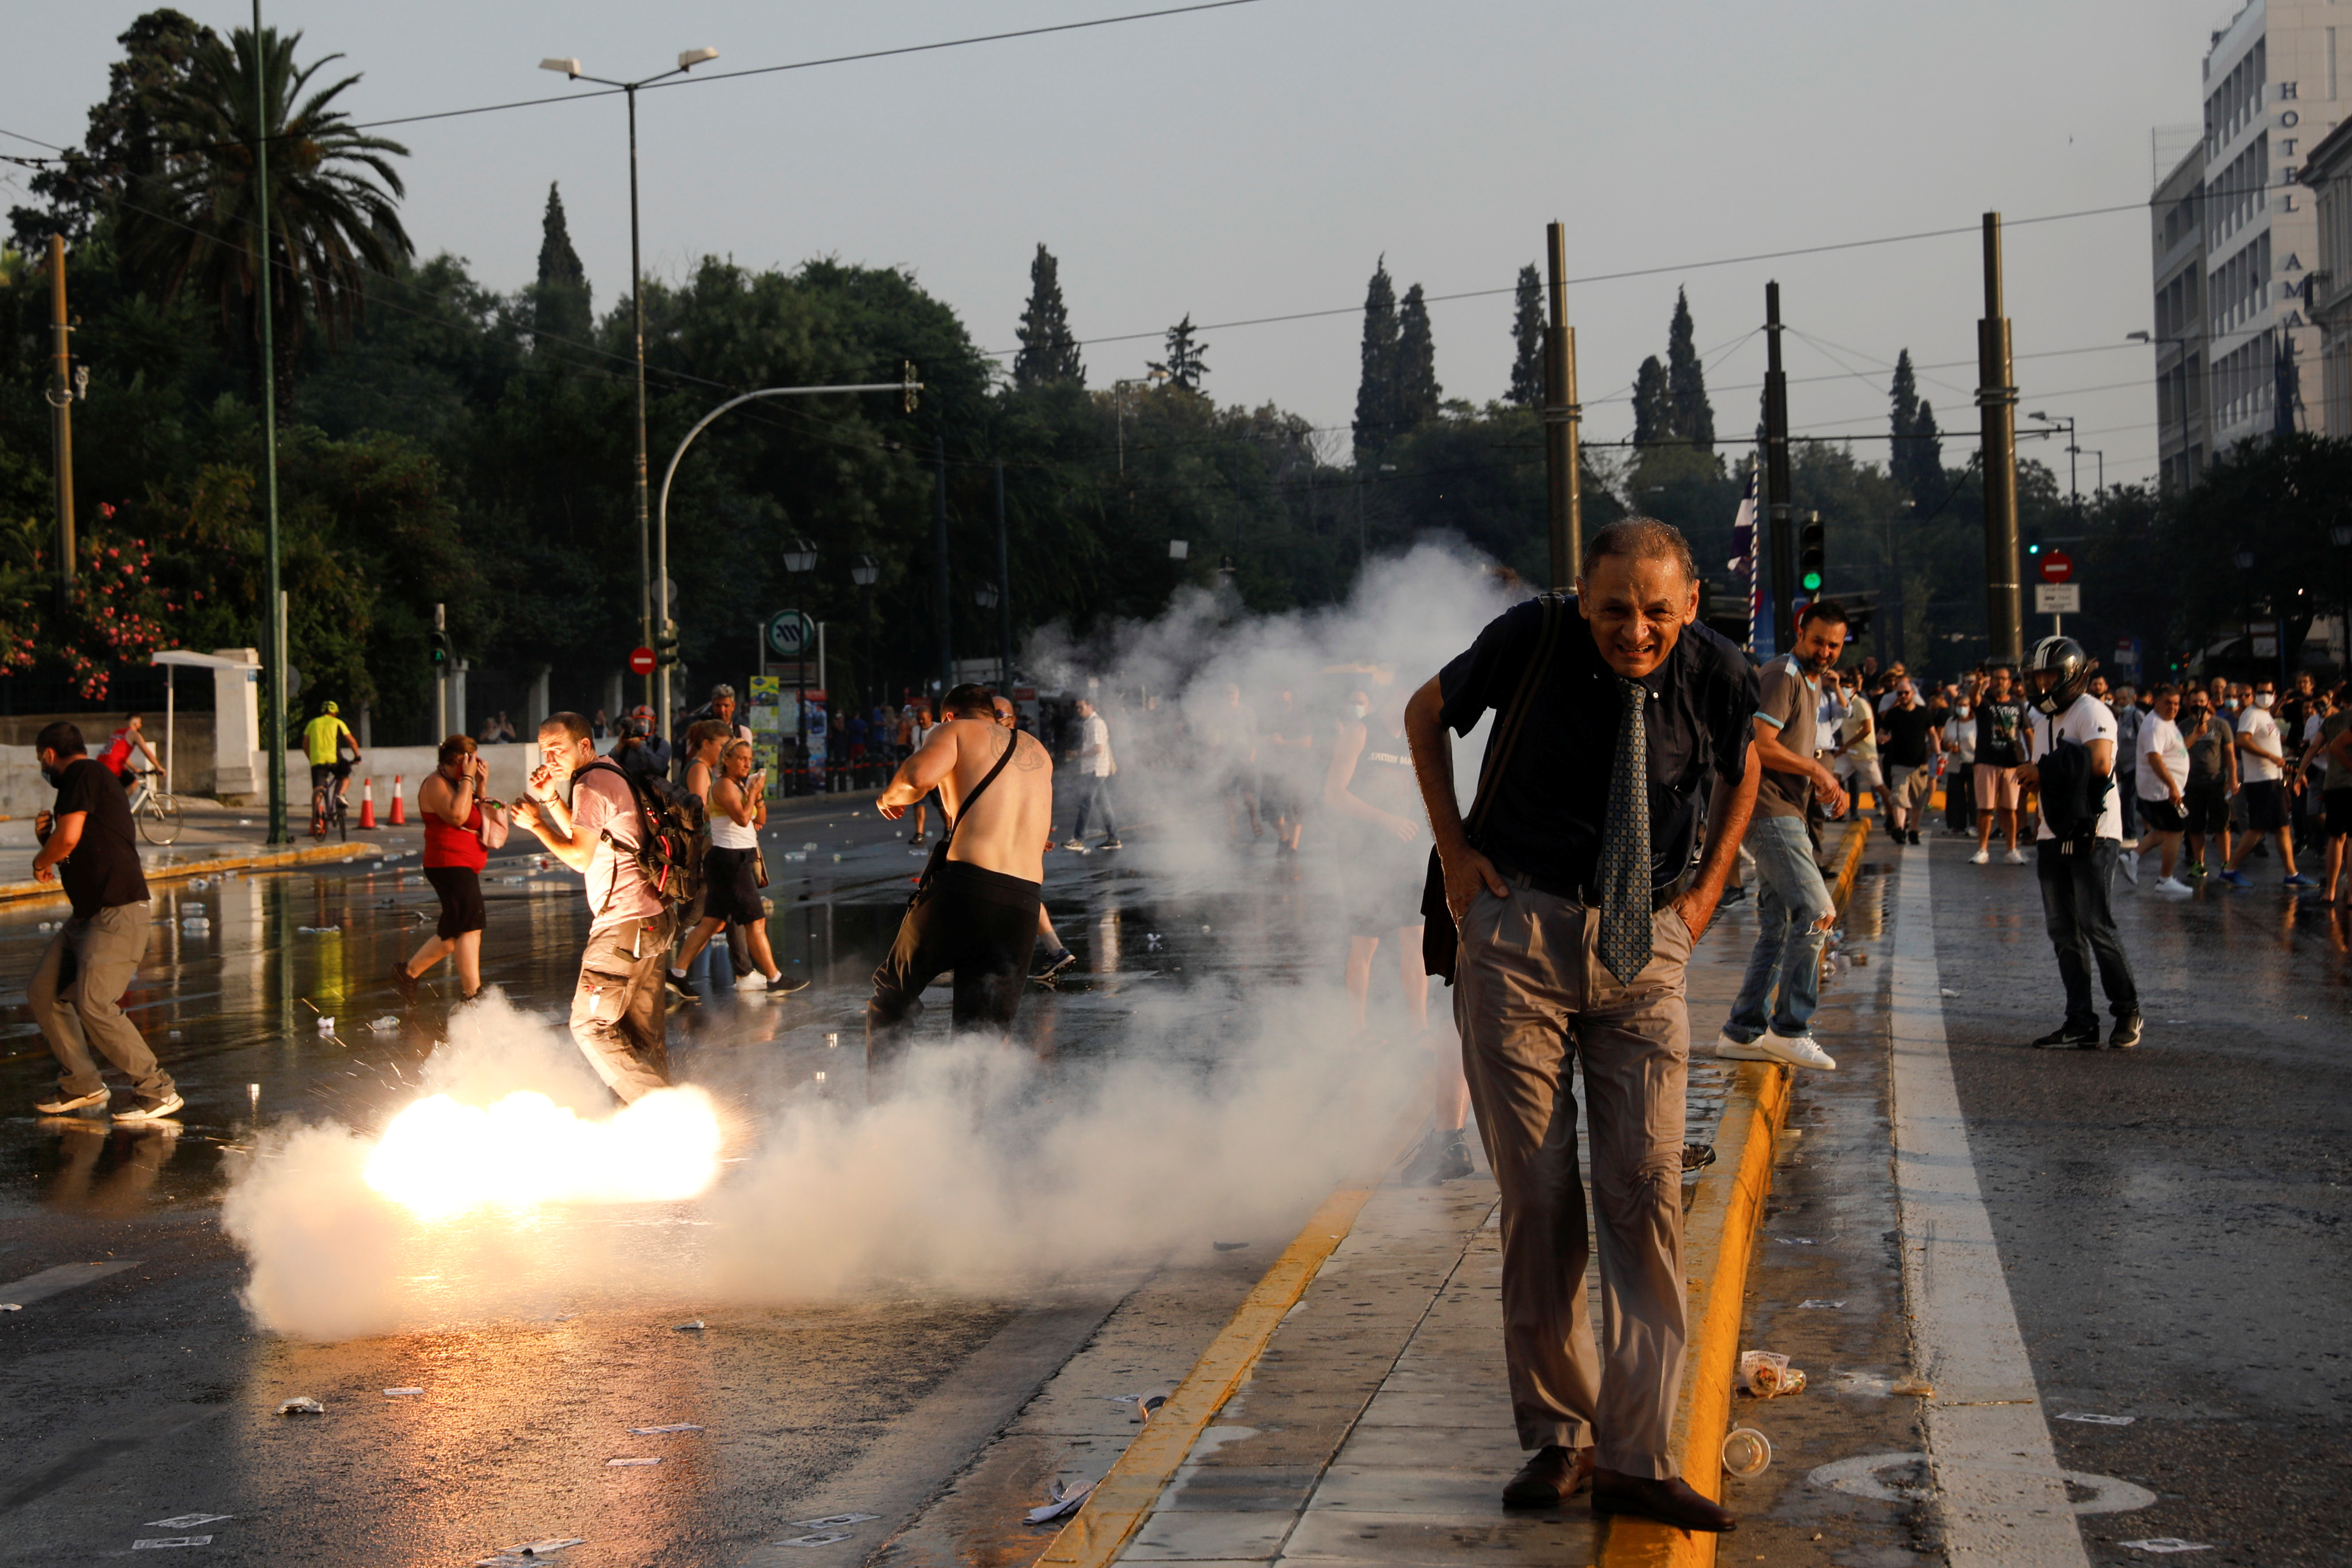 A man reacts as a flash grenade thrown by police officers explodes behind, during a protest againstcoronavirusdisease (COVID-19) vaccinations outside the parliament building, in Athens, Greece, July 21, 2021. REUTERS/Costas Baltas